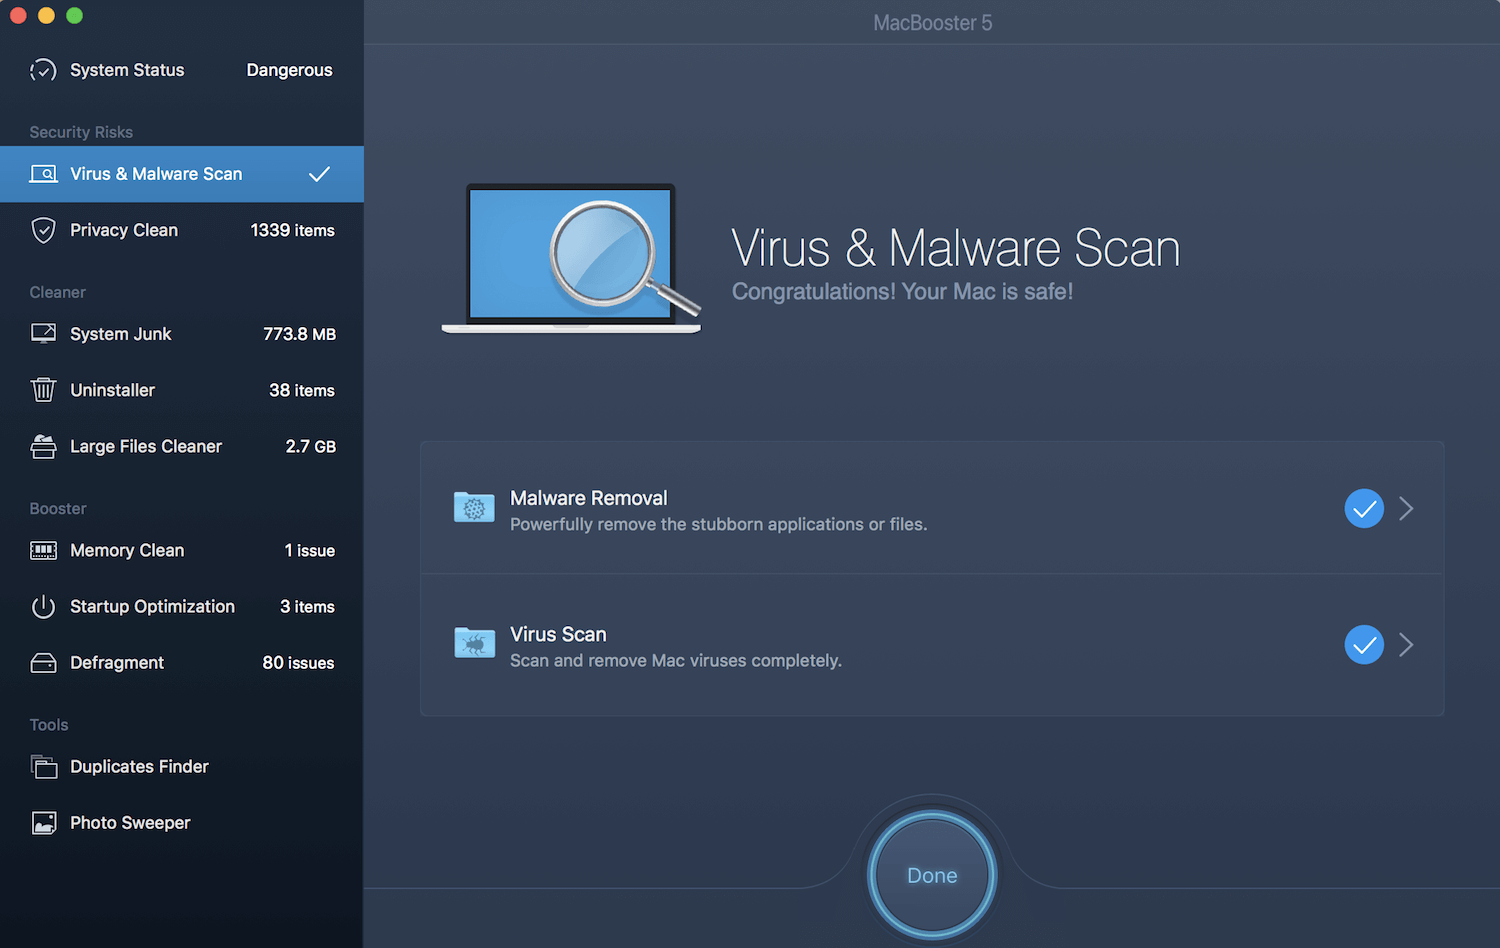 Virus and Malware Scan